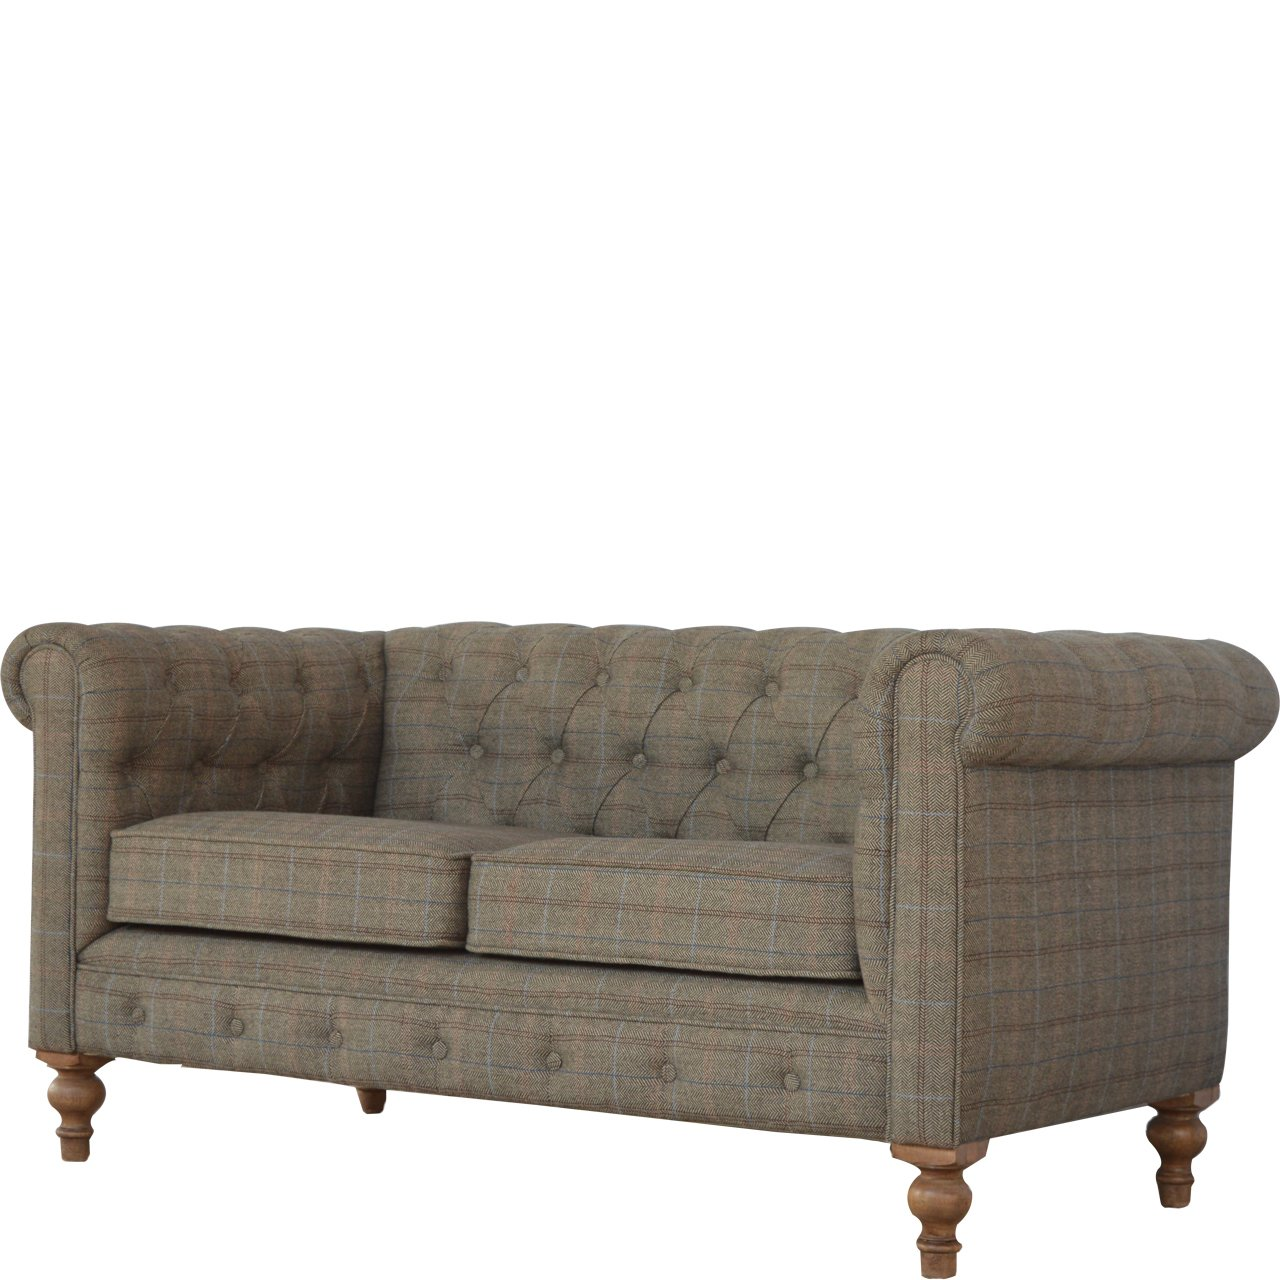 Artisan Chesterfield 2-Sitzer-Sofa, Holz, N Natur